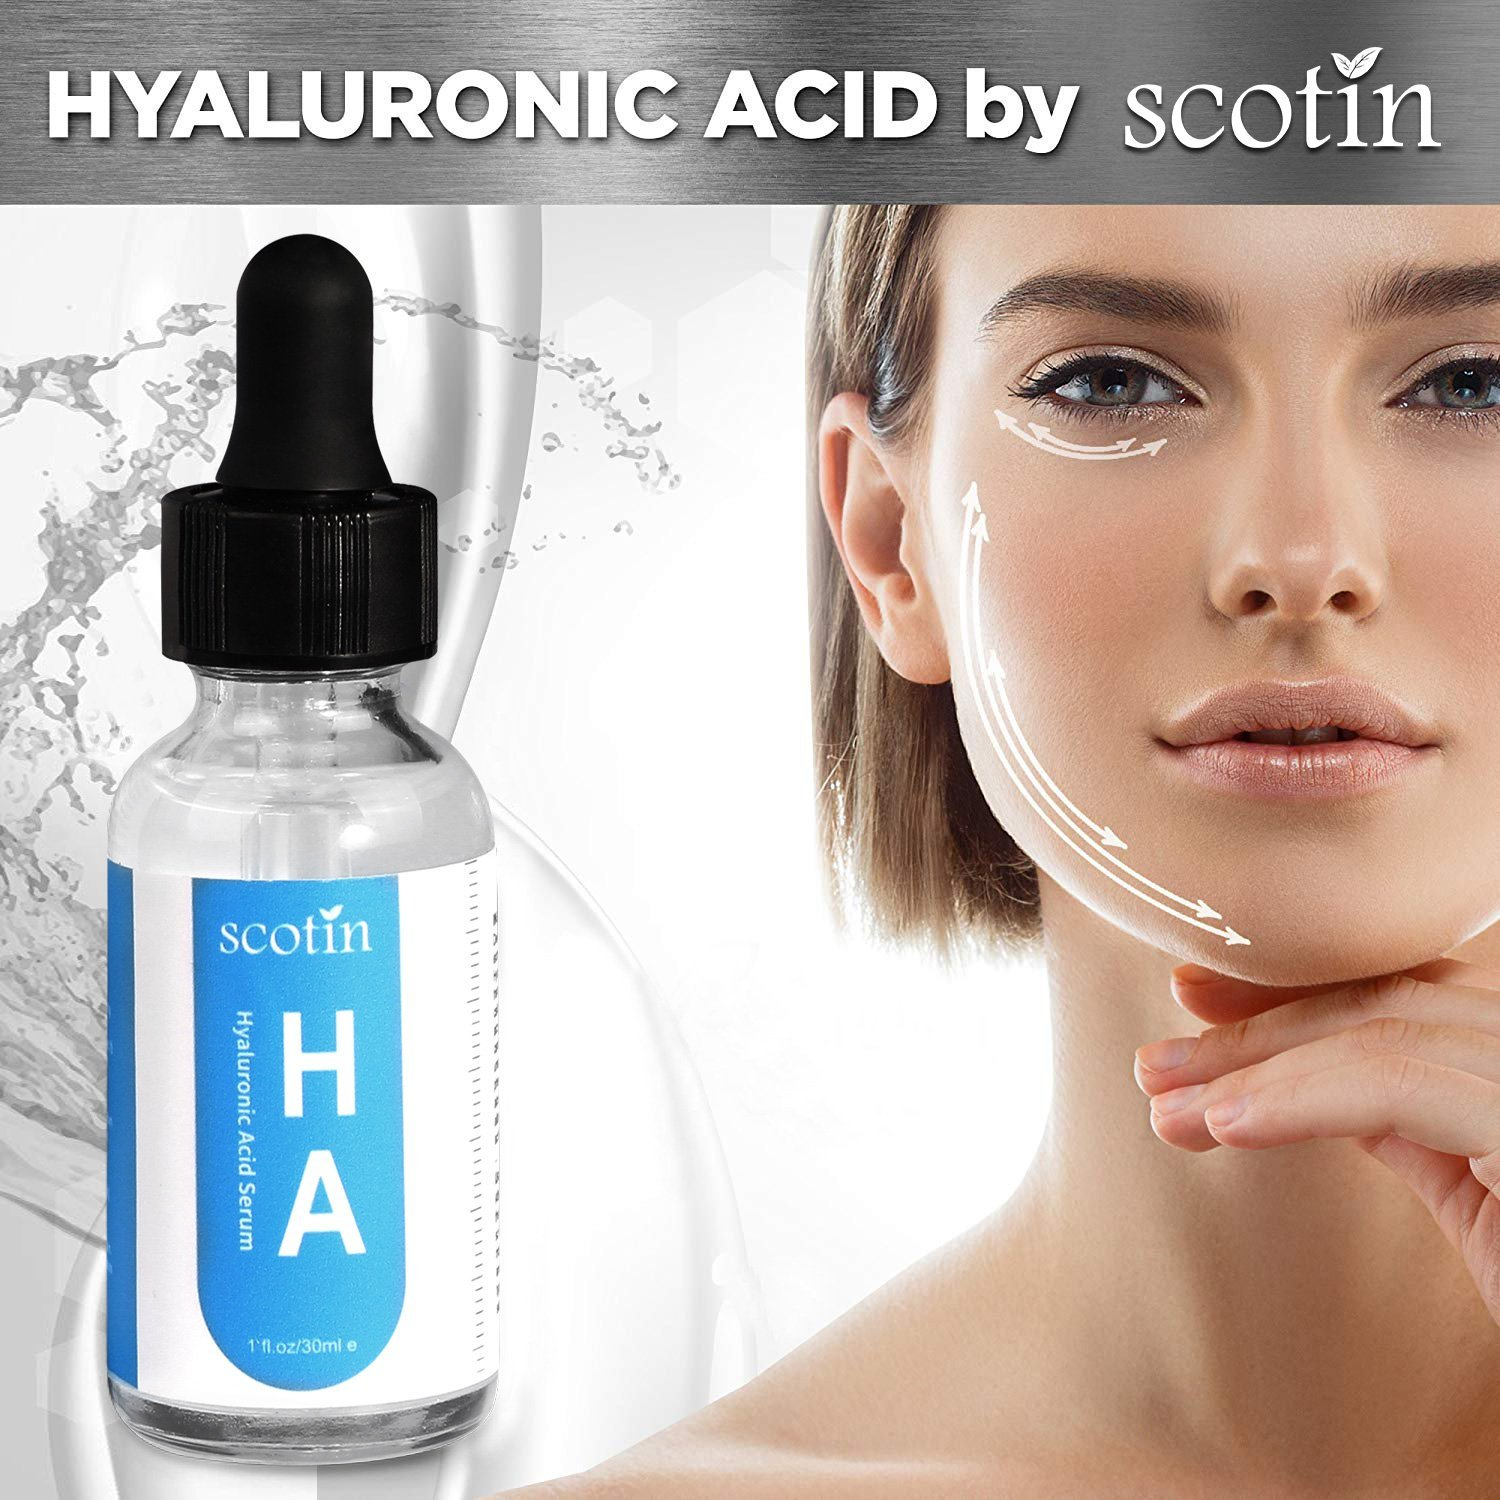 Pure Natural Hyaluronic Acid Serum For Skin Anti-Aging- Natural Aloe Intense Moisture, Non-greasy Anti-wrinkle and Natural Plumper for Skin